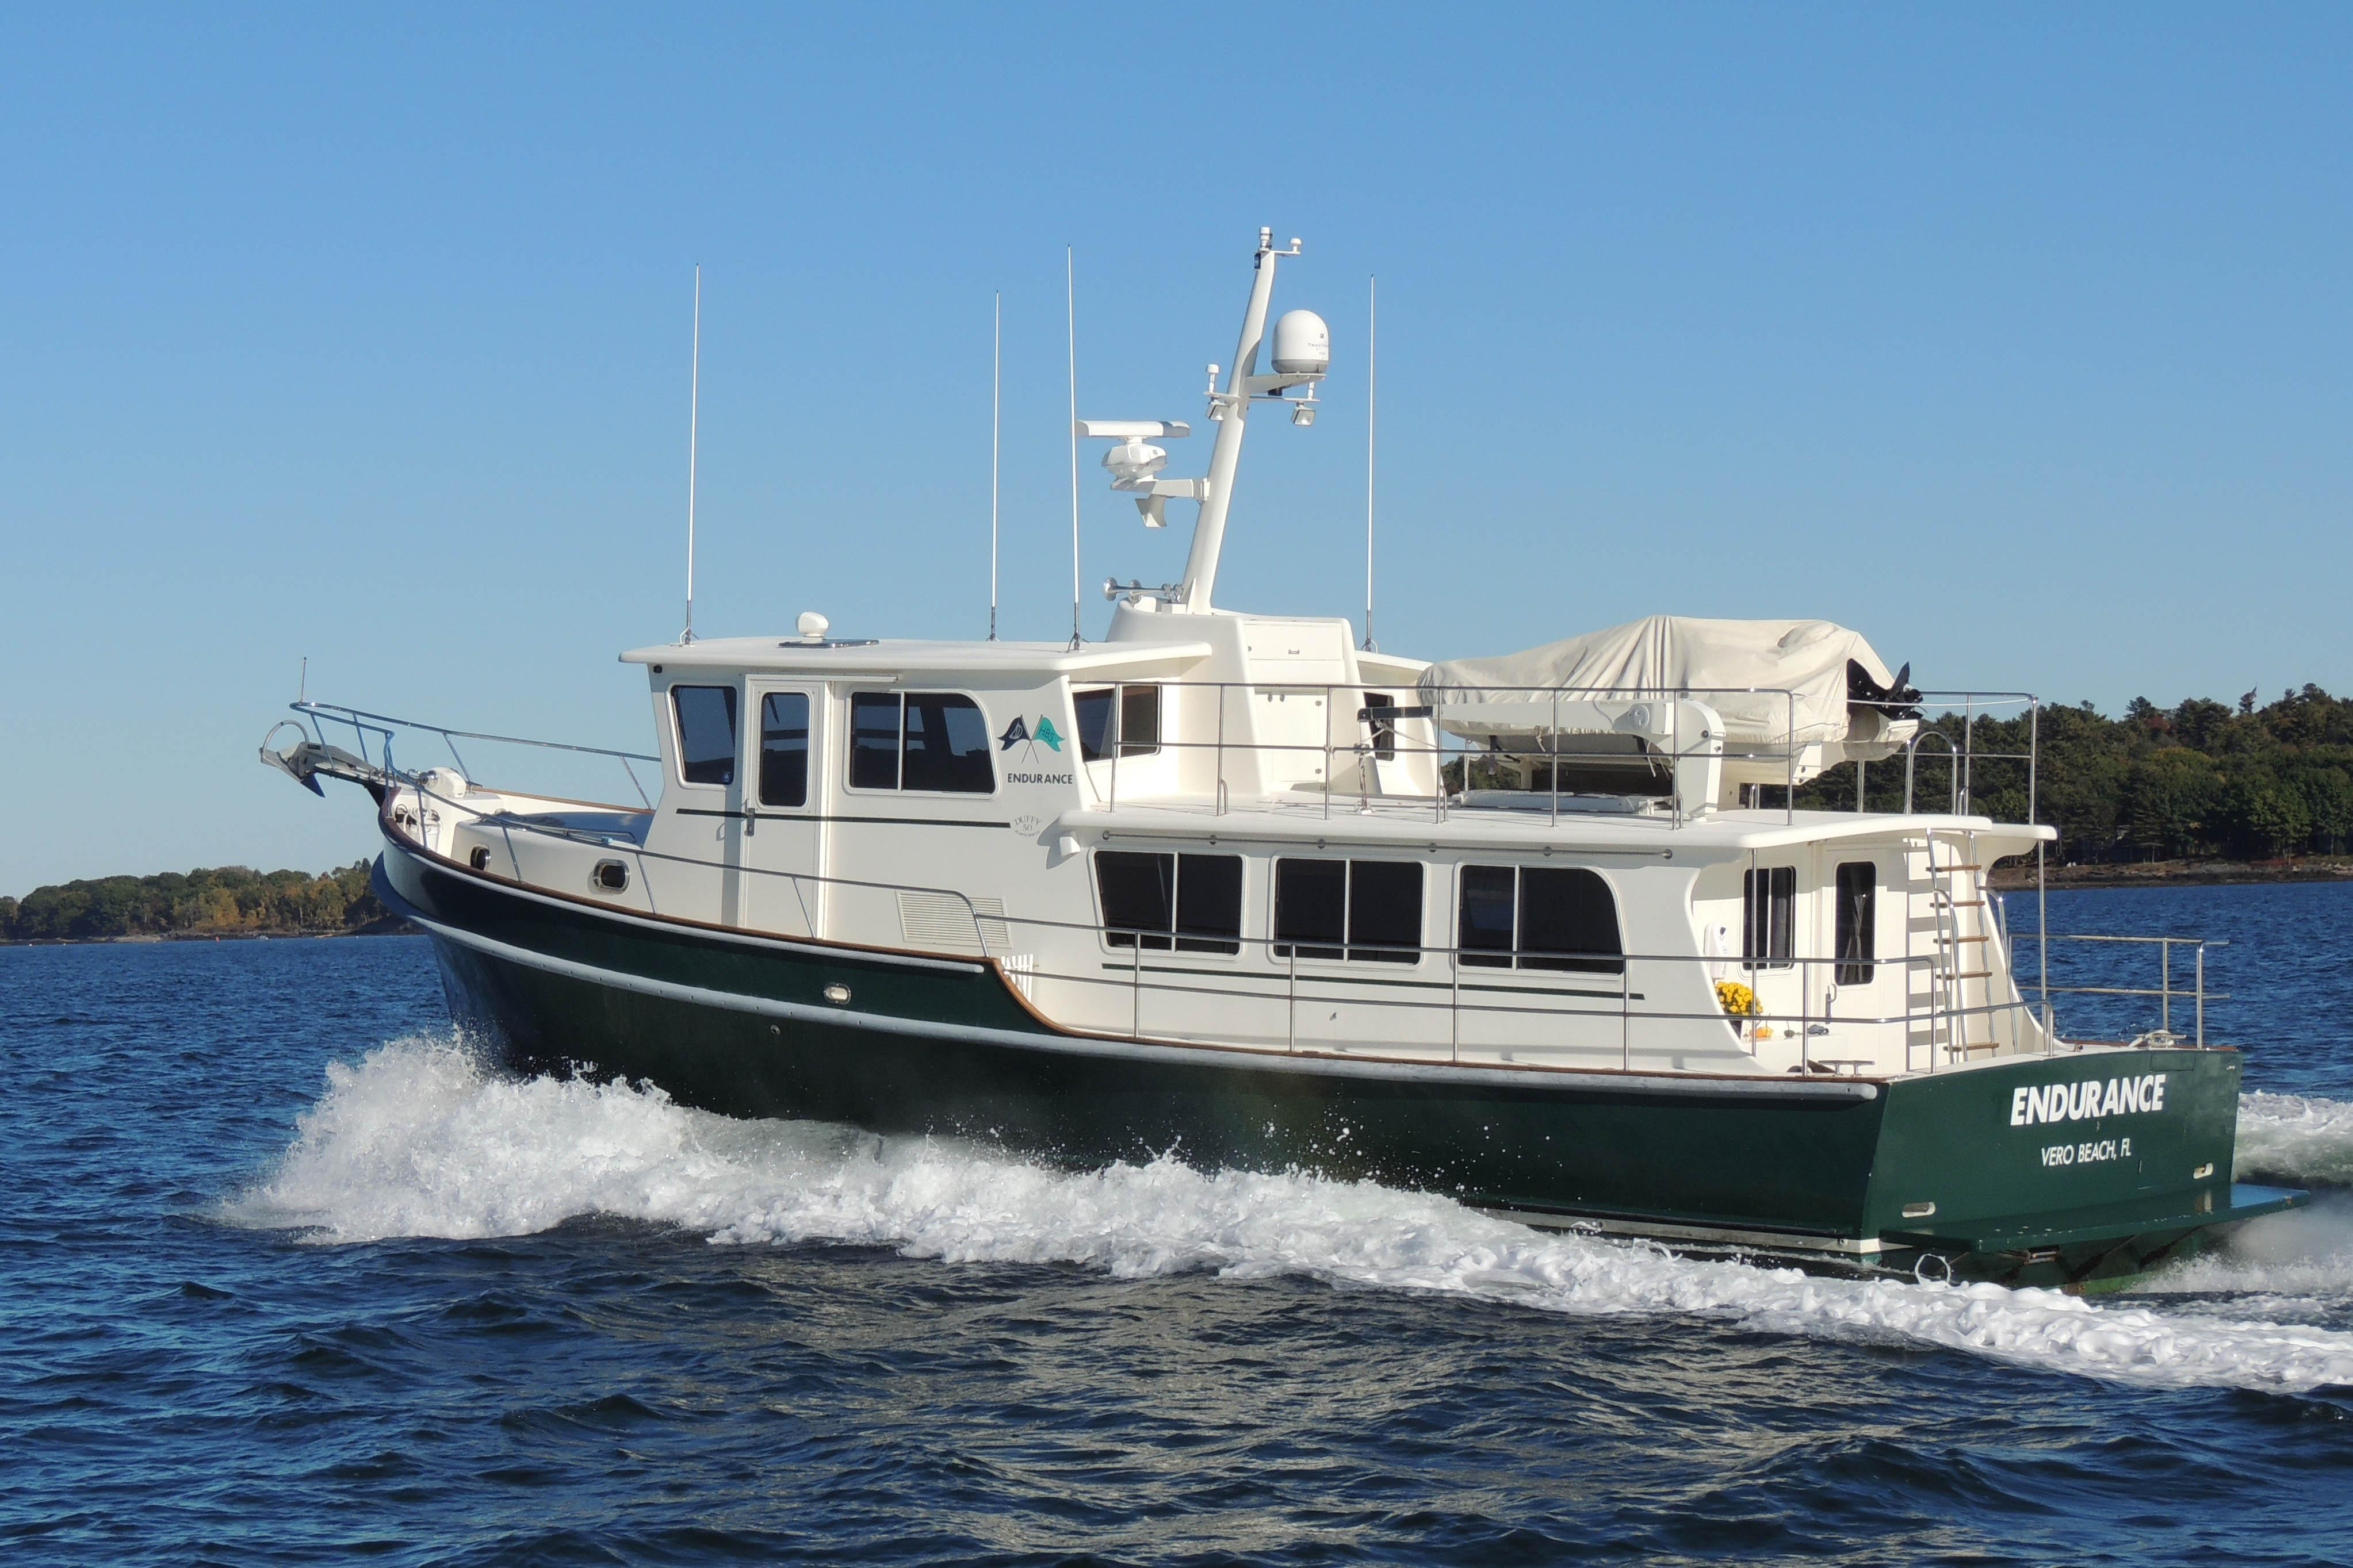 Duffy Boat Wiring Diagram Schematics Electric Trusted Diagrams Parts 2008 50 Pilothouse Fast